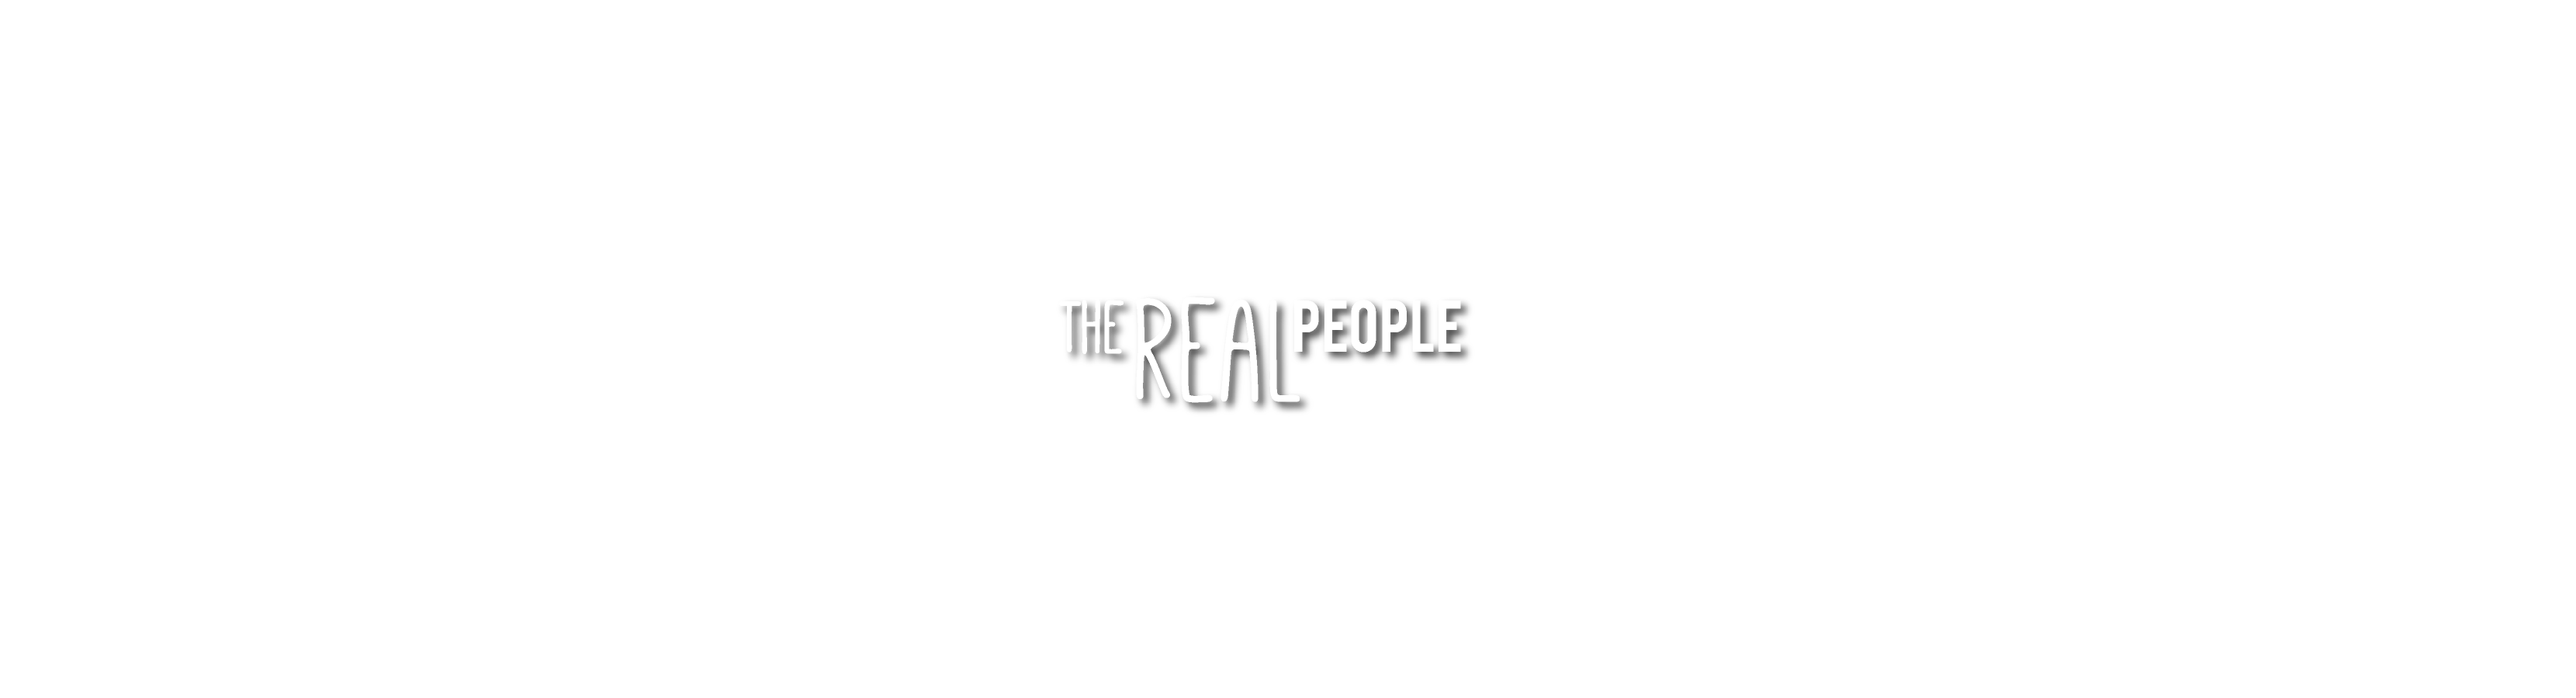 the real people slide